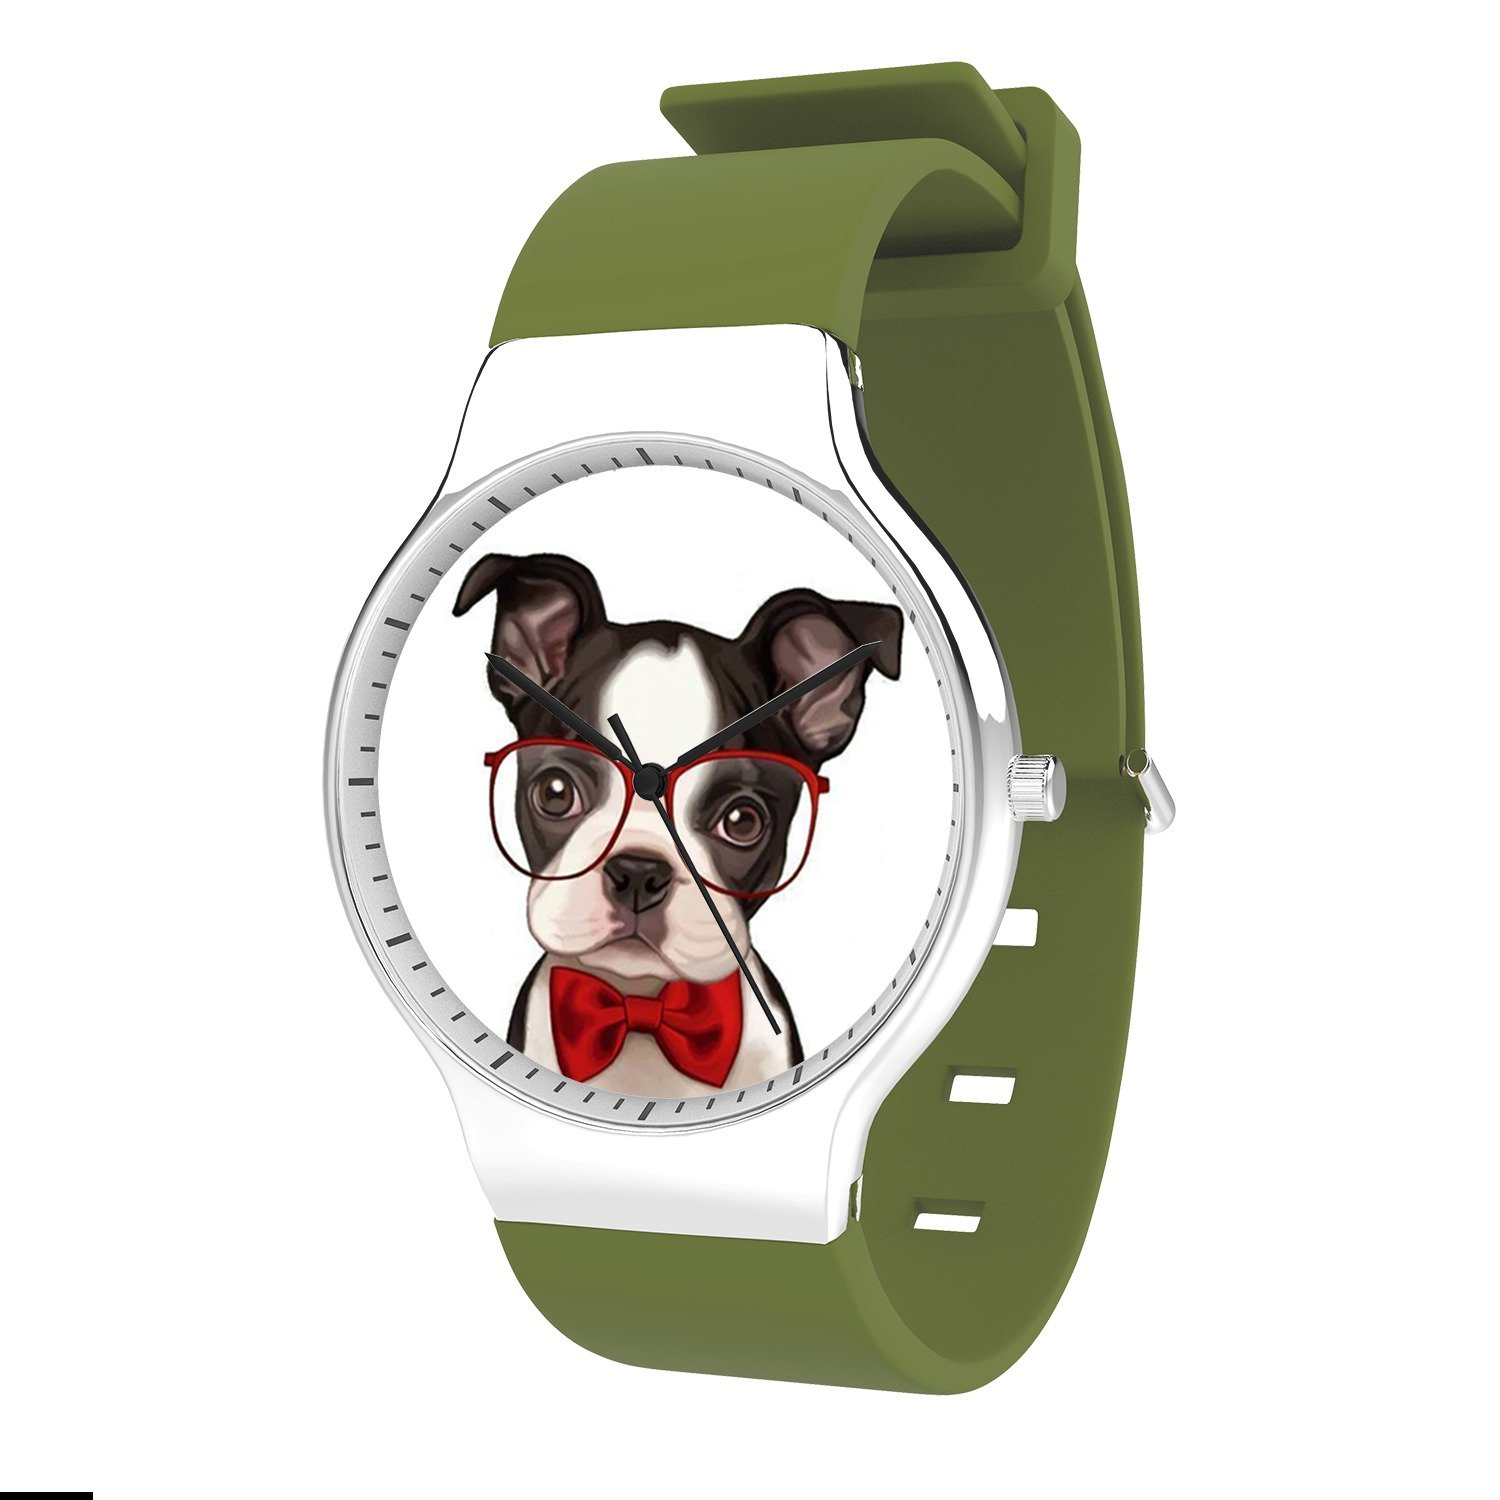 FELOOWSE Glasses Dog Watch Men's Quartz Watches, Minimalist Slim Japanese Quartz Youth Silicone Watches, Fashion Practical Waterproof Boys Watch Customized Watches